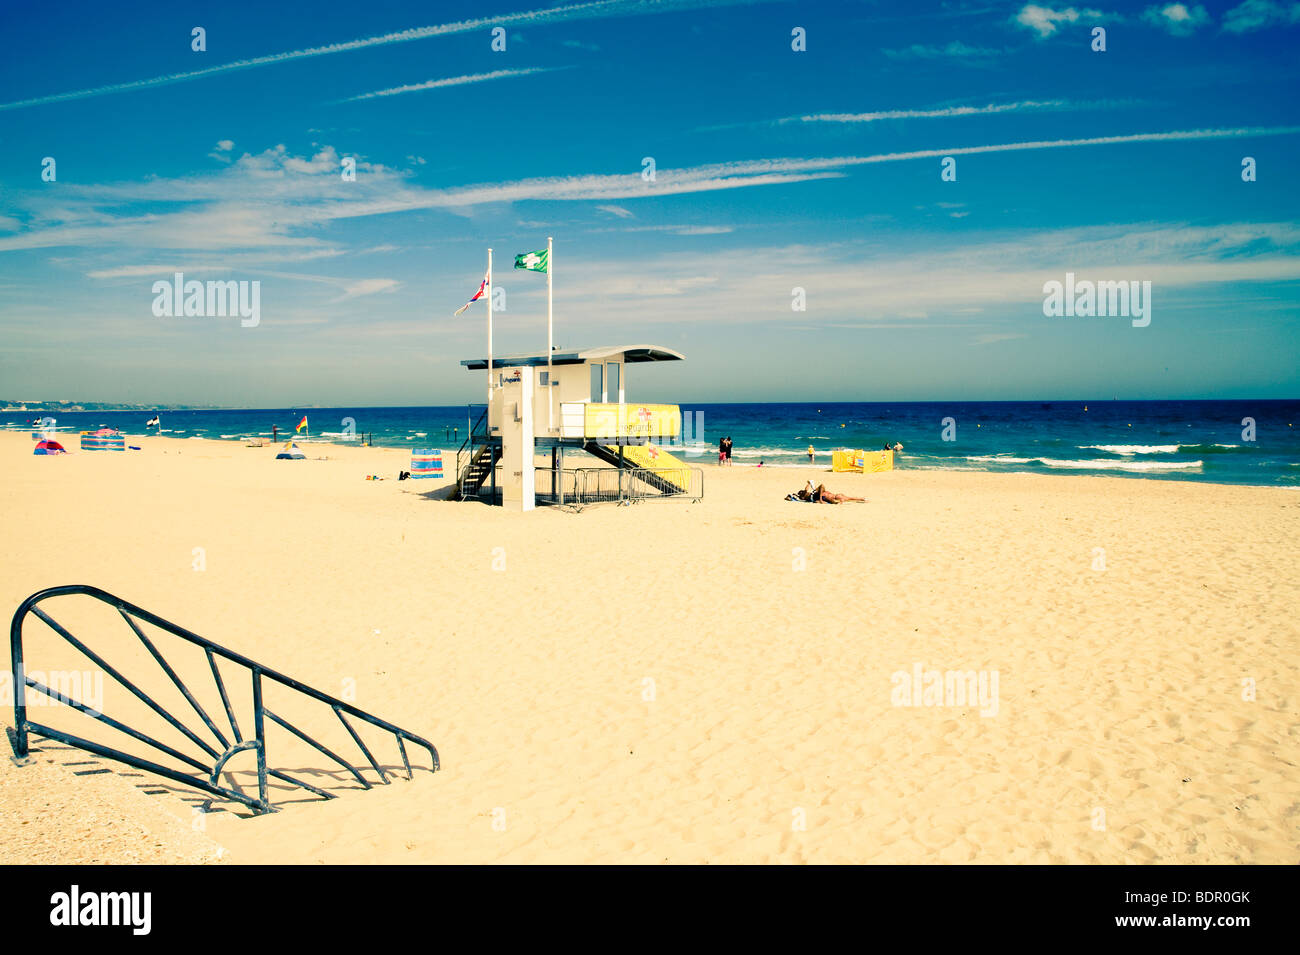 A beach rescue watch tower - Stock Image